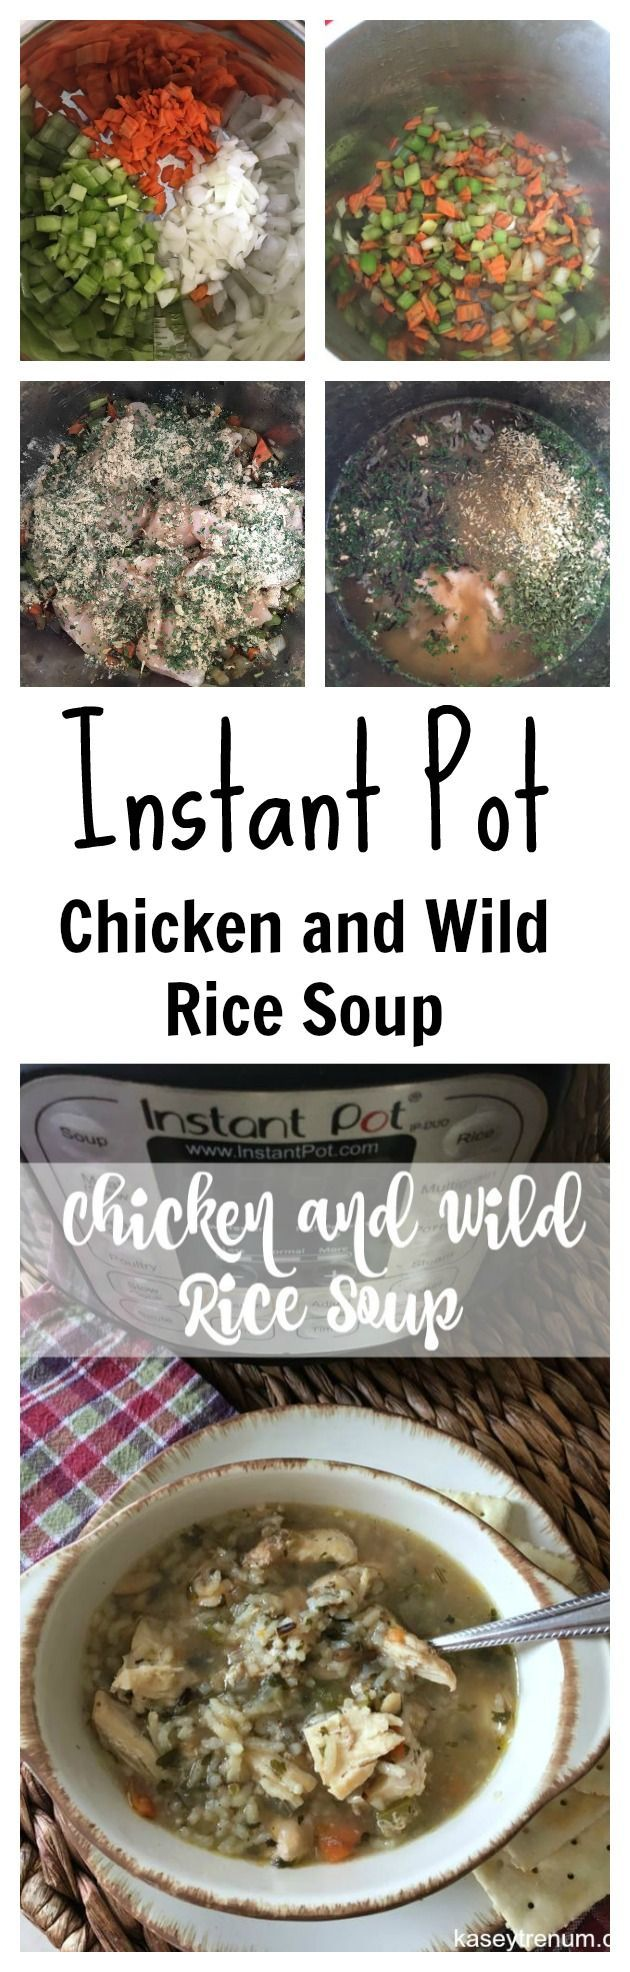 Instant Pot Chicken and Wild Rice Soup  Instant Pot / Soup / Easy Recipes / Healthy Recipes /